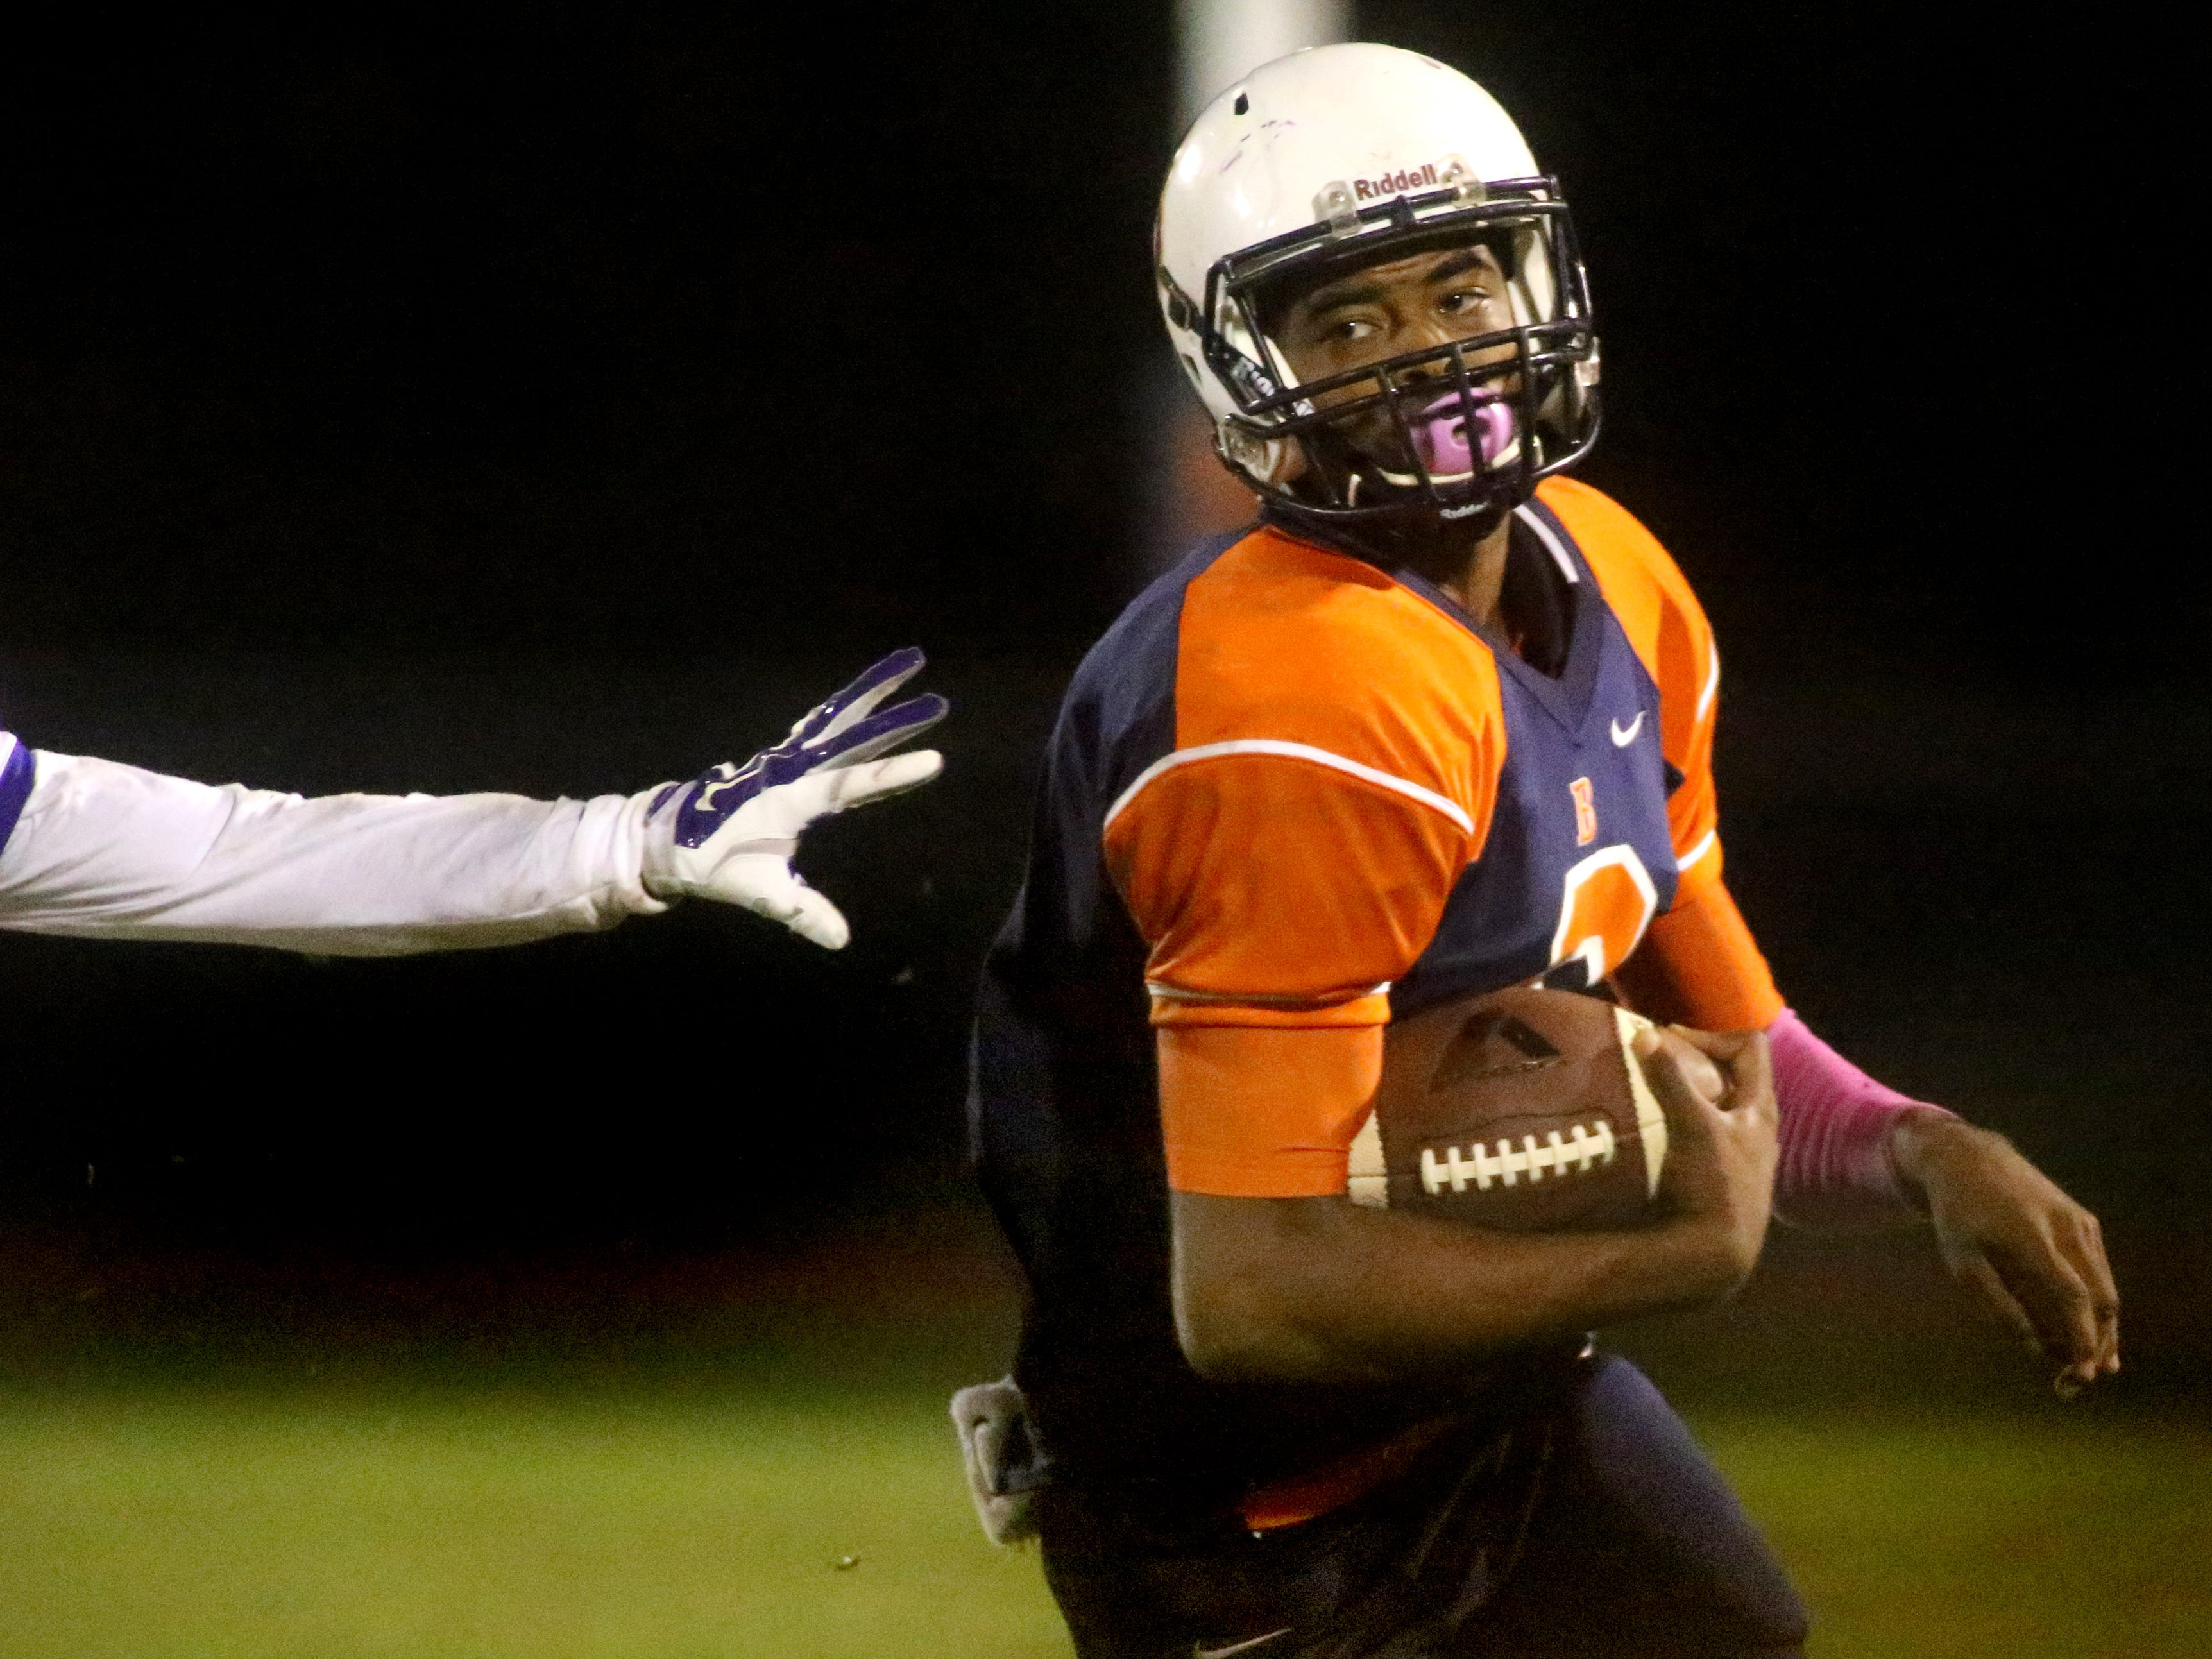 Blackman's quarterback Jauan Jennings runs down the sidelines as he gets pushed out of bounds during the game against Smyrna at Blackman, on Friday, October 17, 2014.